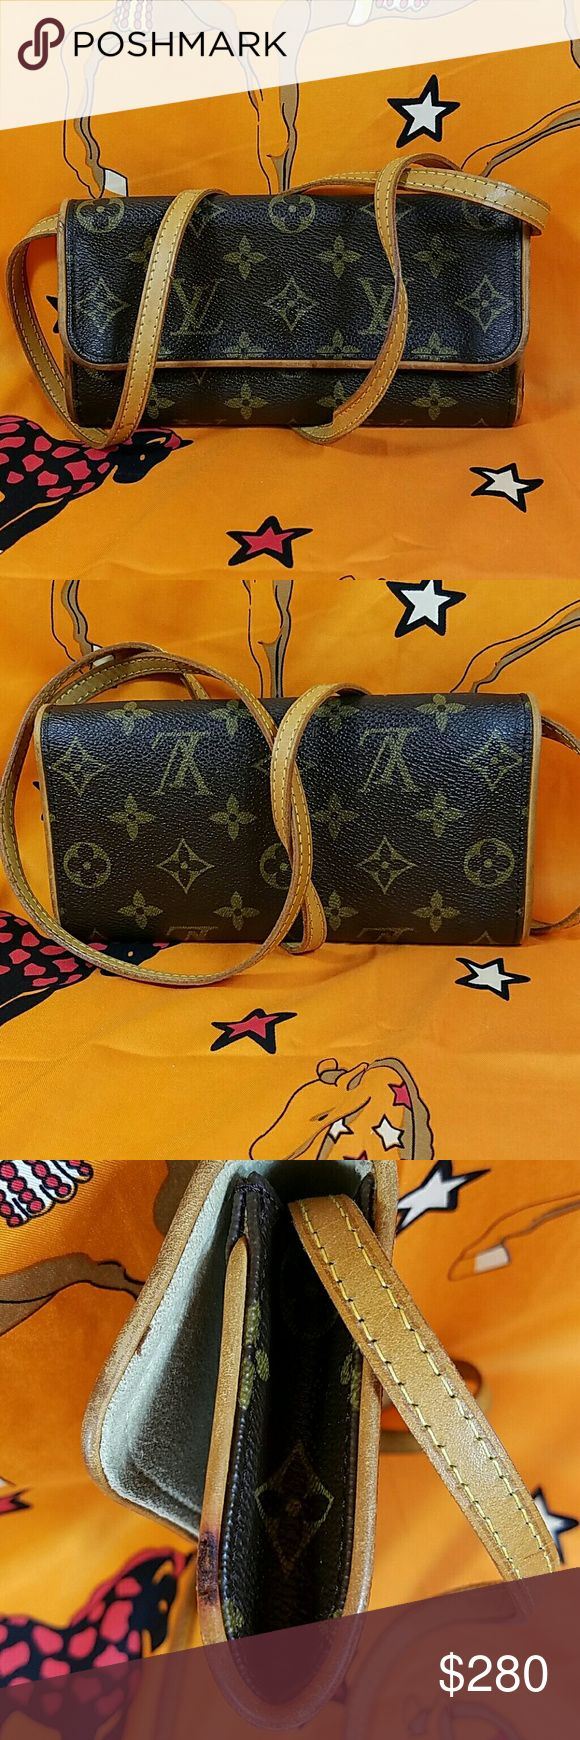 "Authentic Louis Vuitton Monogram Twin Pochette The canvas is in good condition. The leather trims showed wearing, 2 cracks ( 3rd, 4th pictures), some dark spots on the leather trims also. About 48"" long strap is in good condition. Date code CA0091. It made in Spain. Dimension: ( about) 4, 7, & .5. No trade please. Louis Vuitton Bags Shoulder Bags"